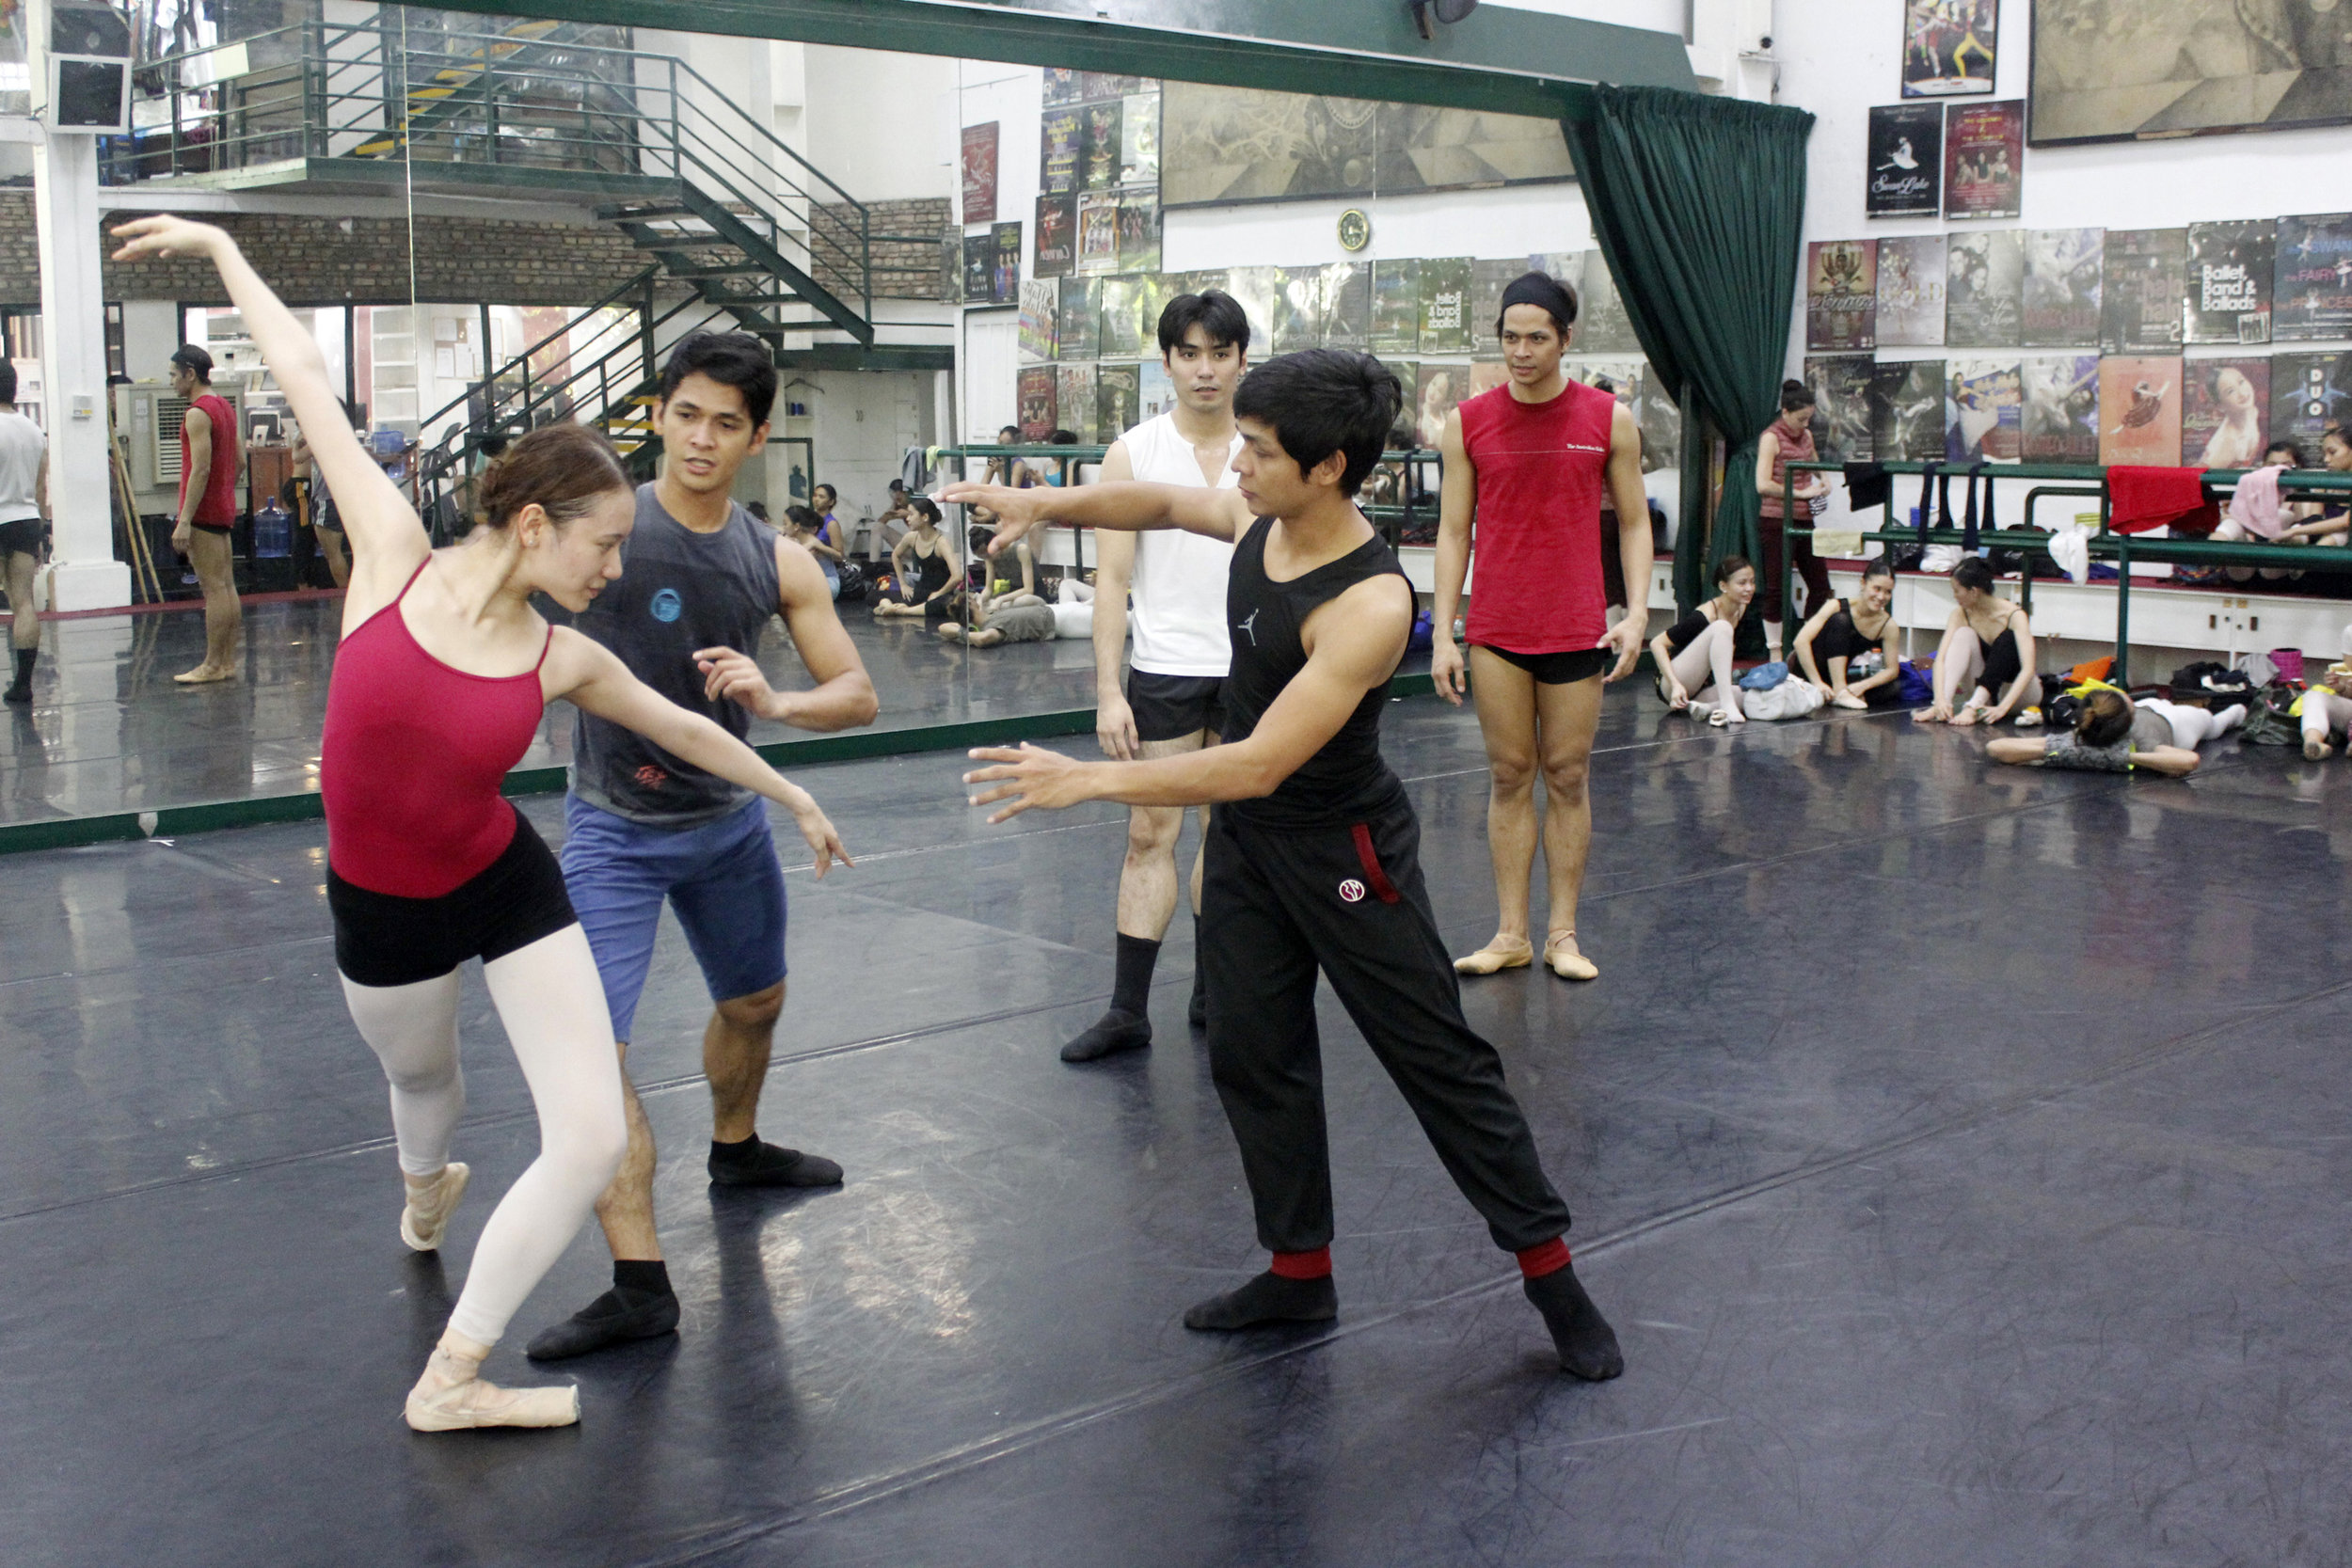 Rehearsing with    Ibong Adarna    choreographer Gerardo Francisco and soloist Abigail Oliveiro in the title role. Photo by Jimmy Villanueva